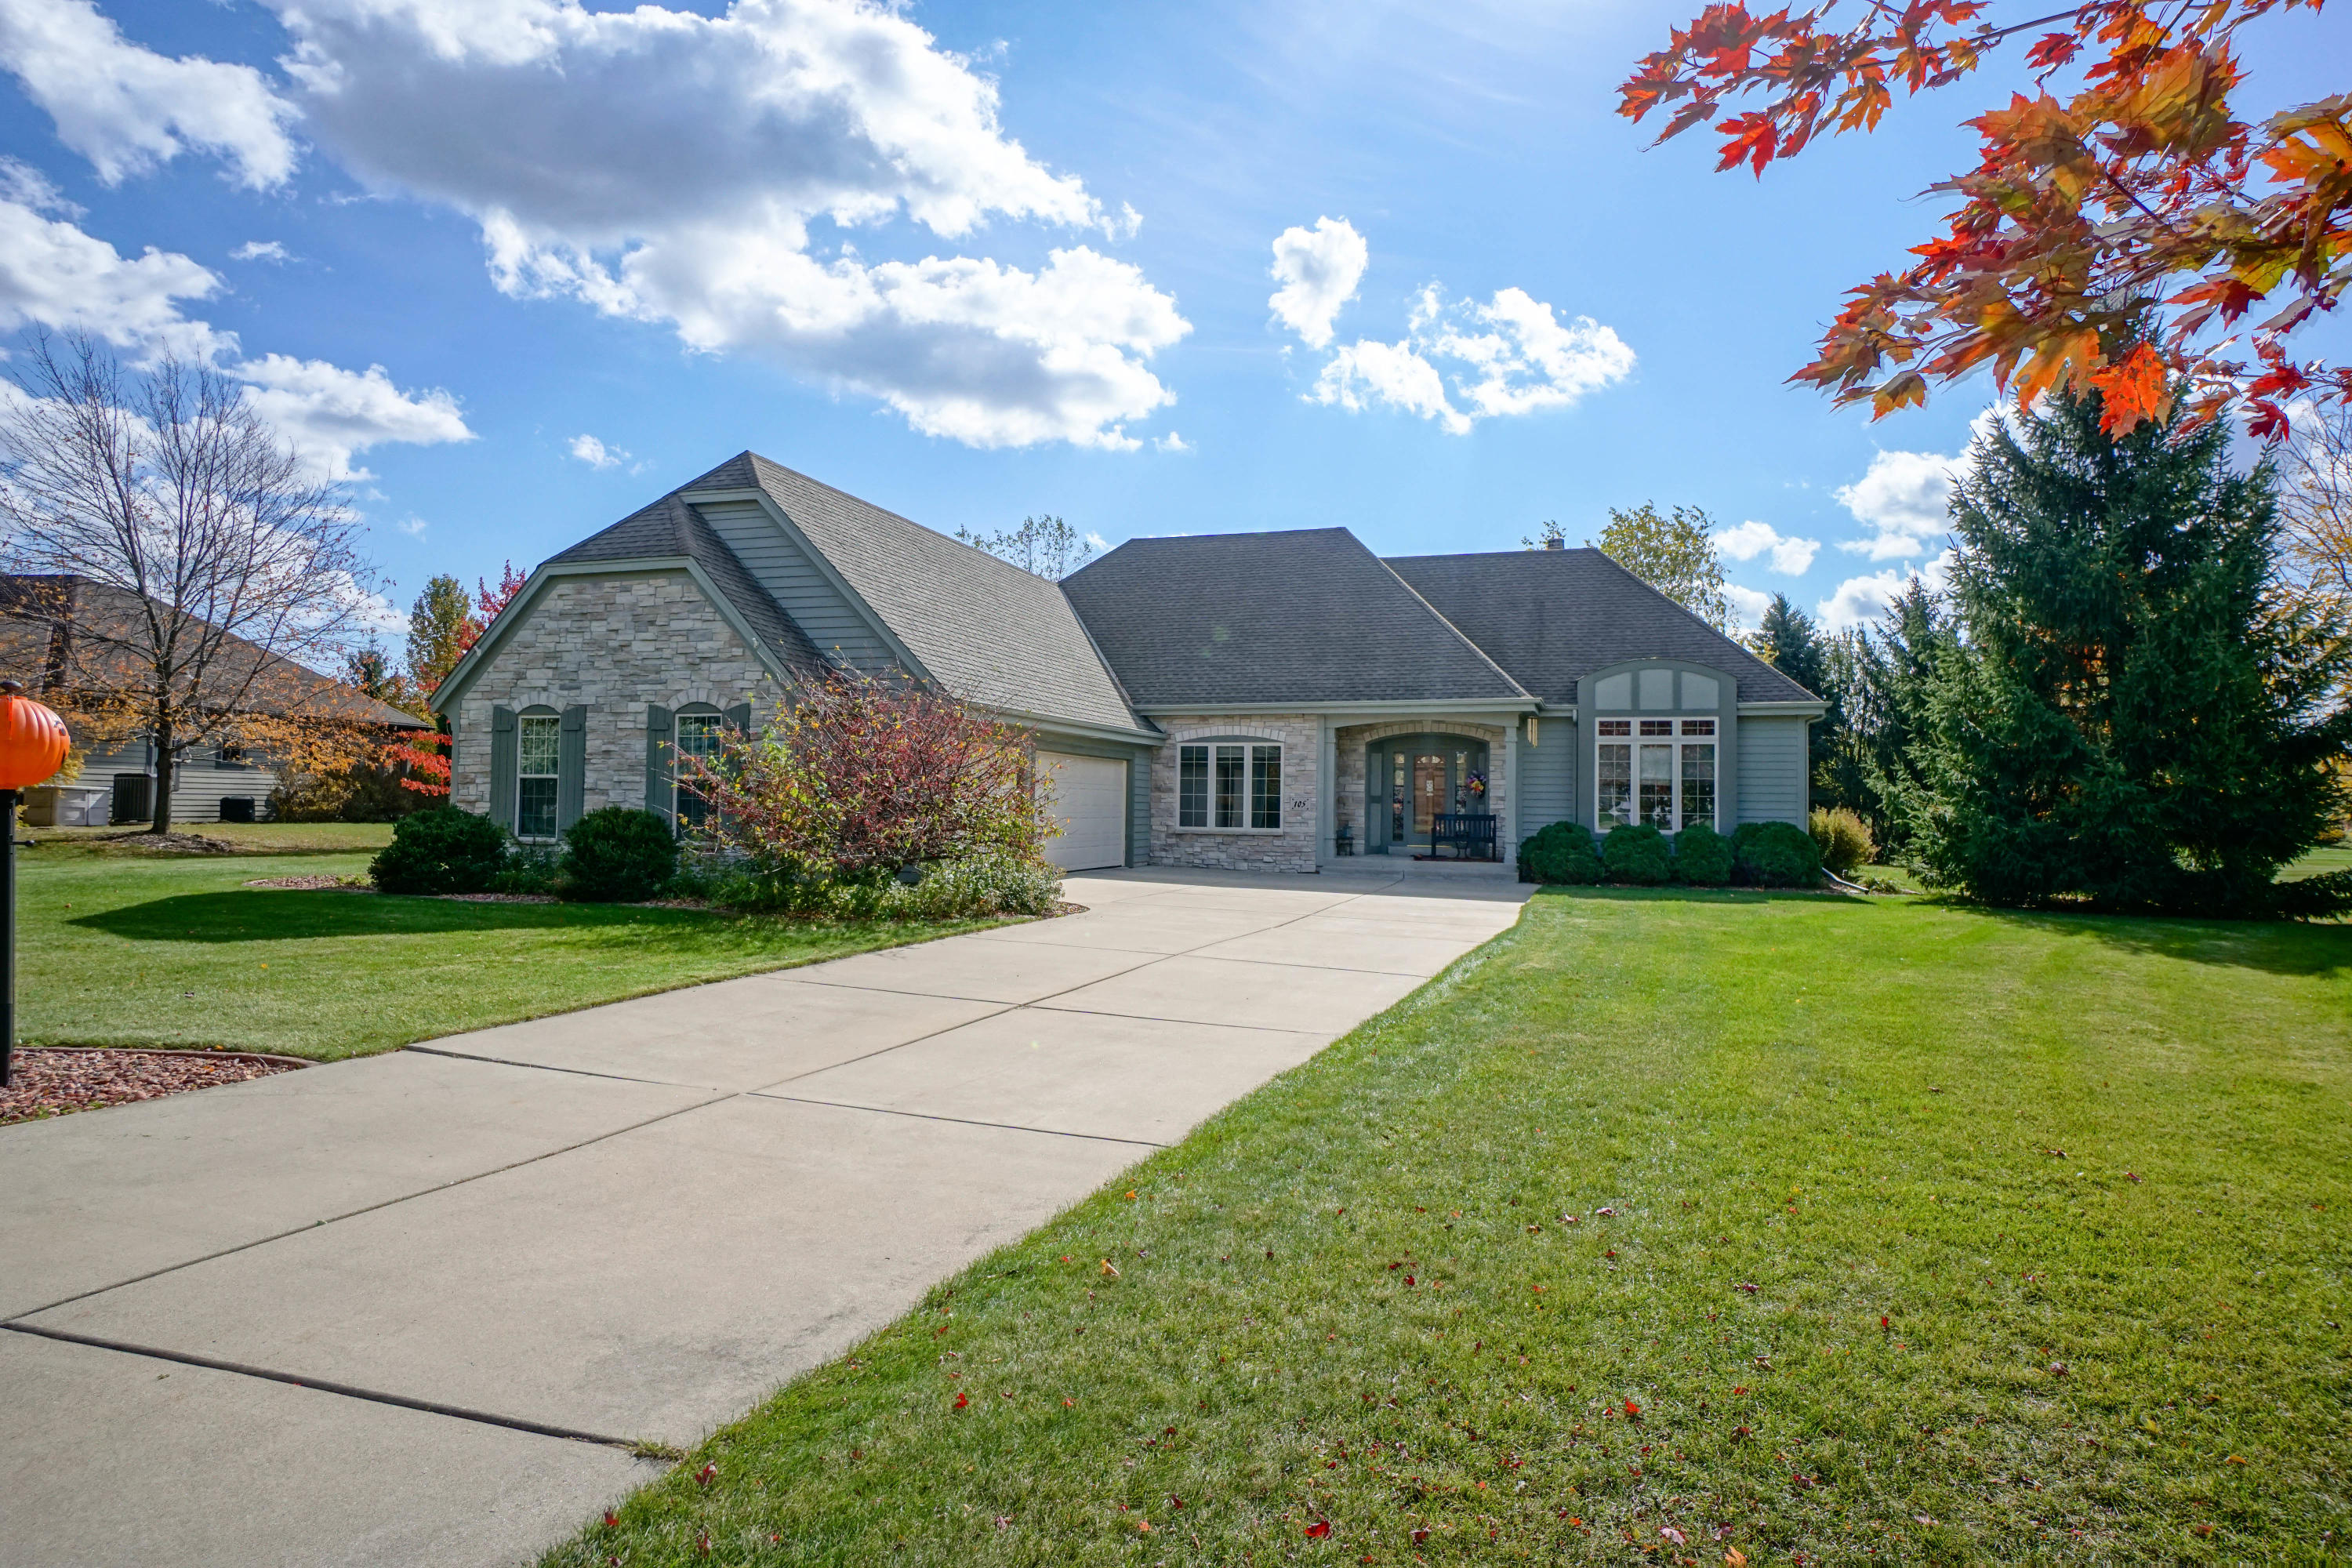 105 Trails Edge Ct, Hartland, Wisconsin 53029, 3 Bedrooms Bedrooms, 7 Rooms Rooms,2 BathroomsBathrooms,Single-Family,For Sale,Trails Edge Ct,1713906